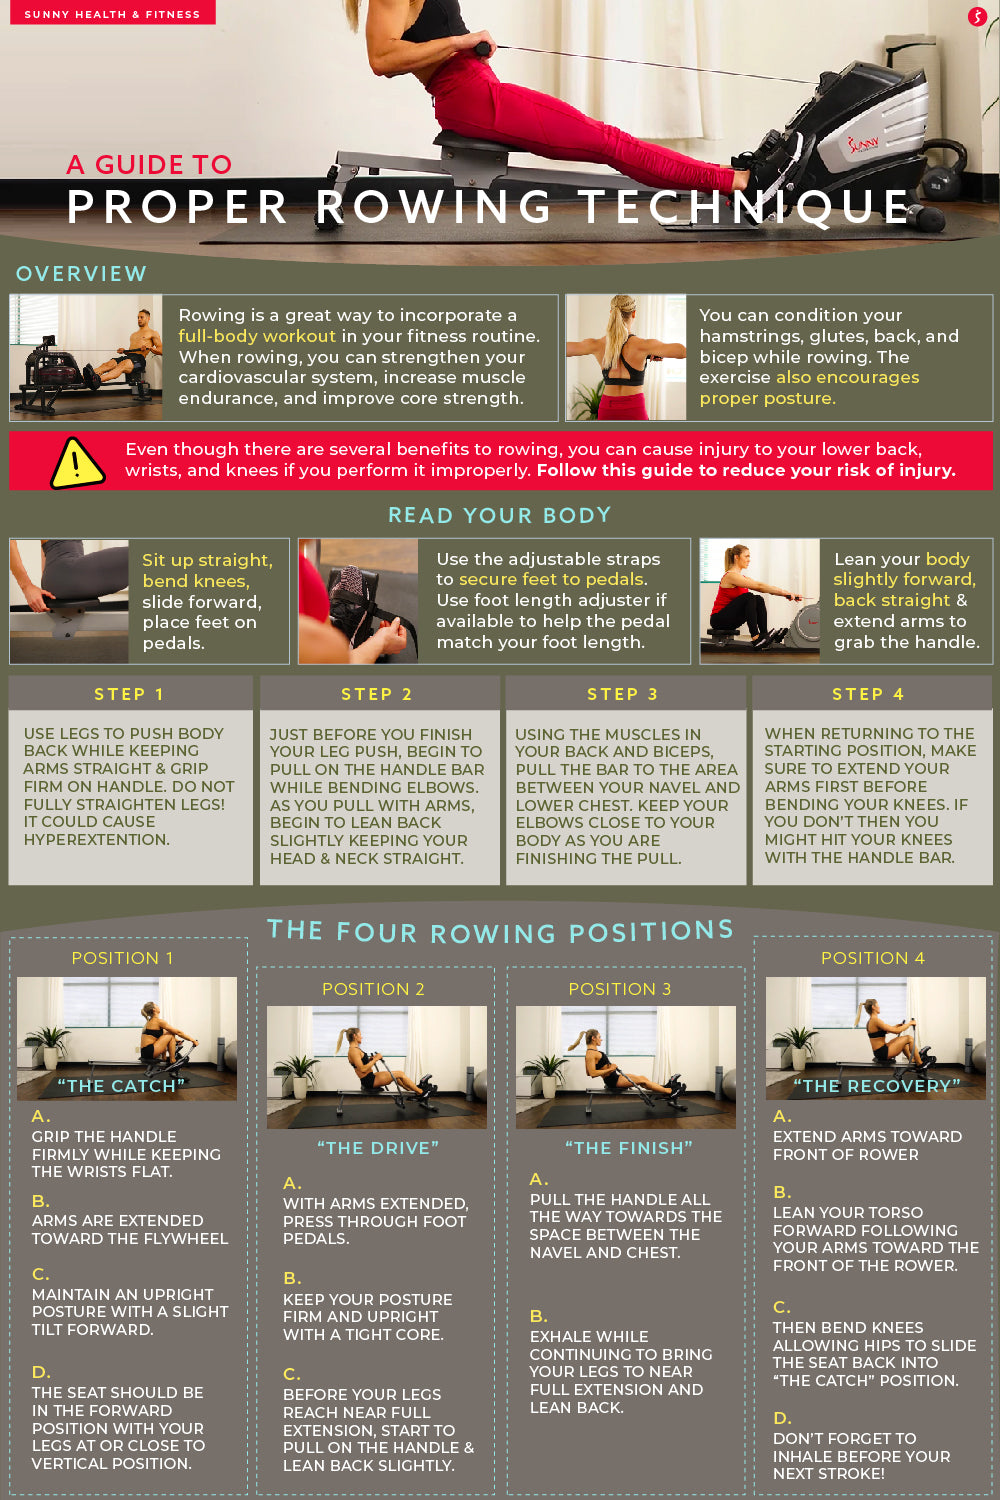 A Guide to Proper Rowing Technique Infographic